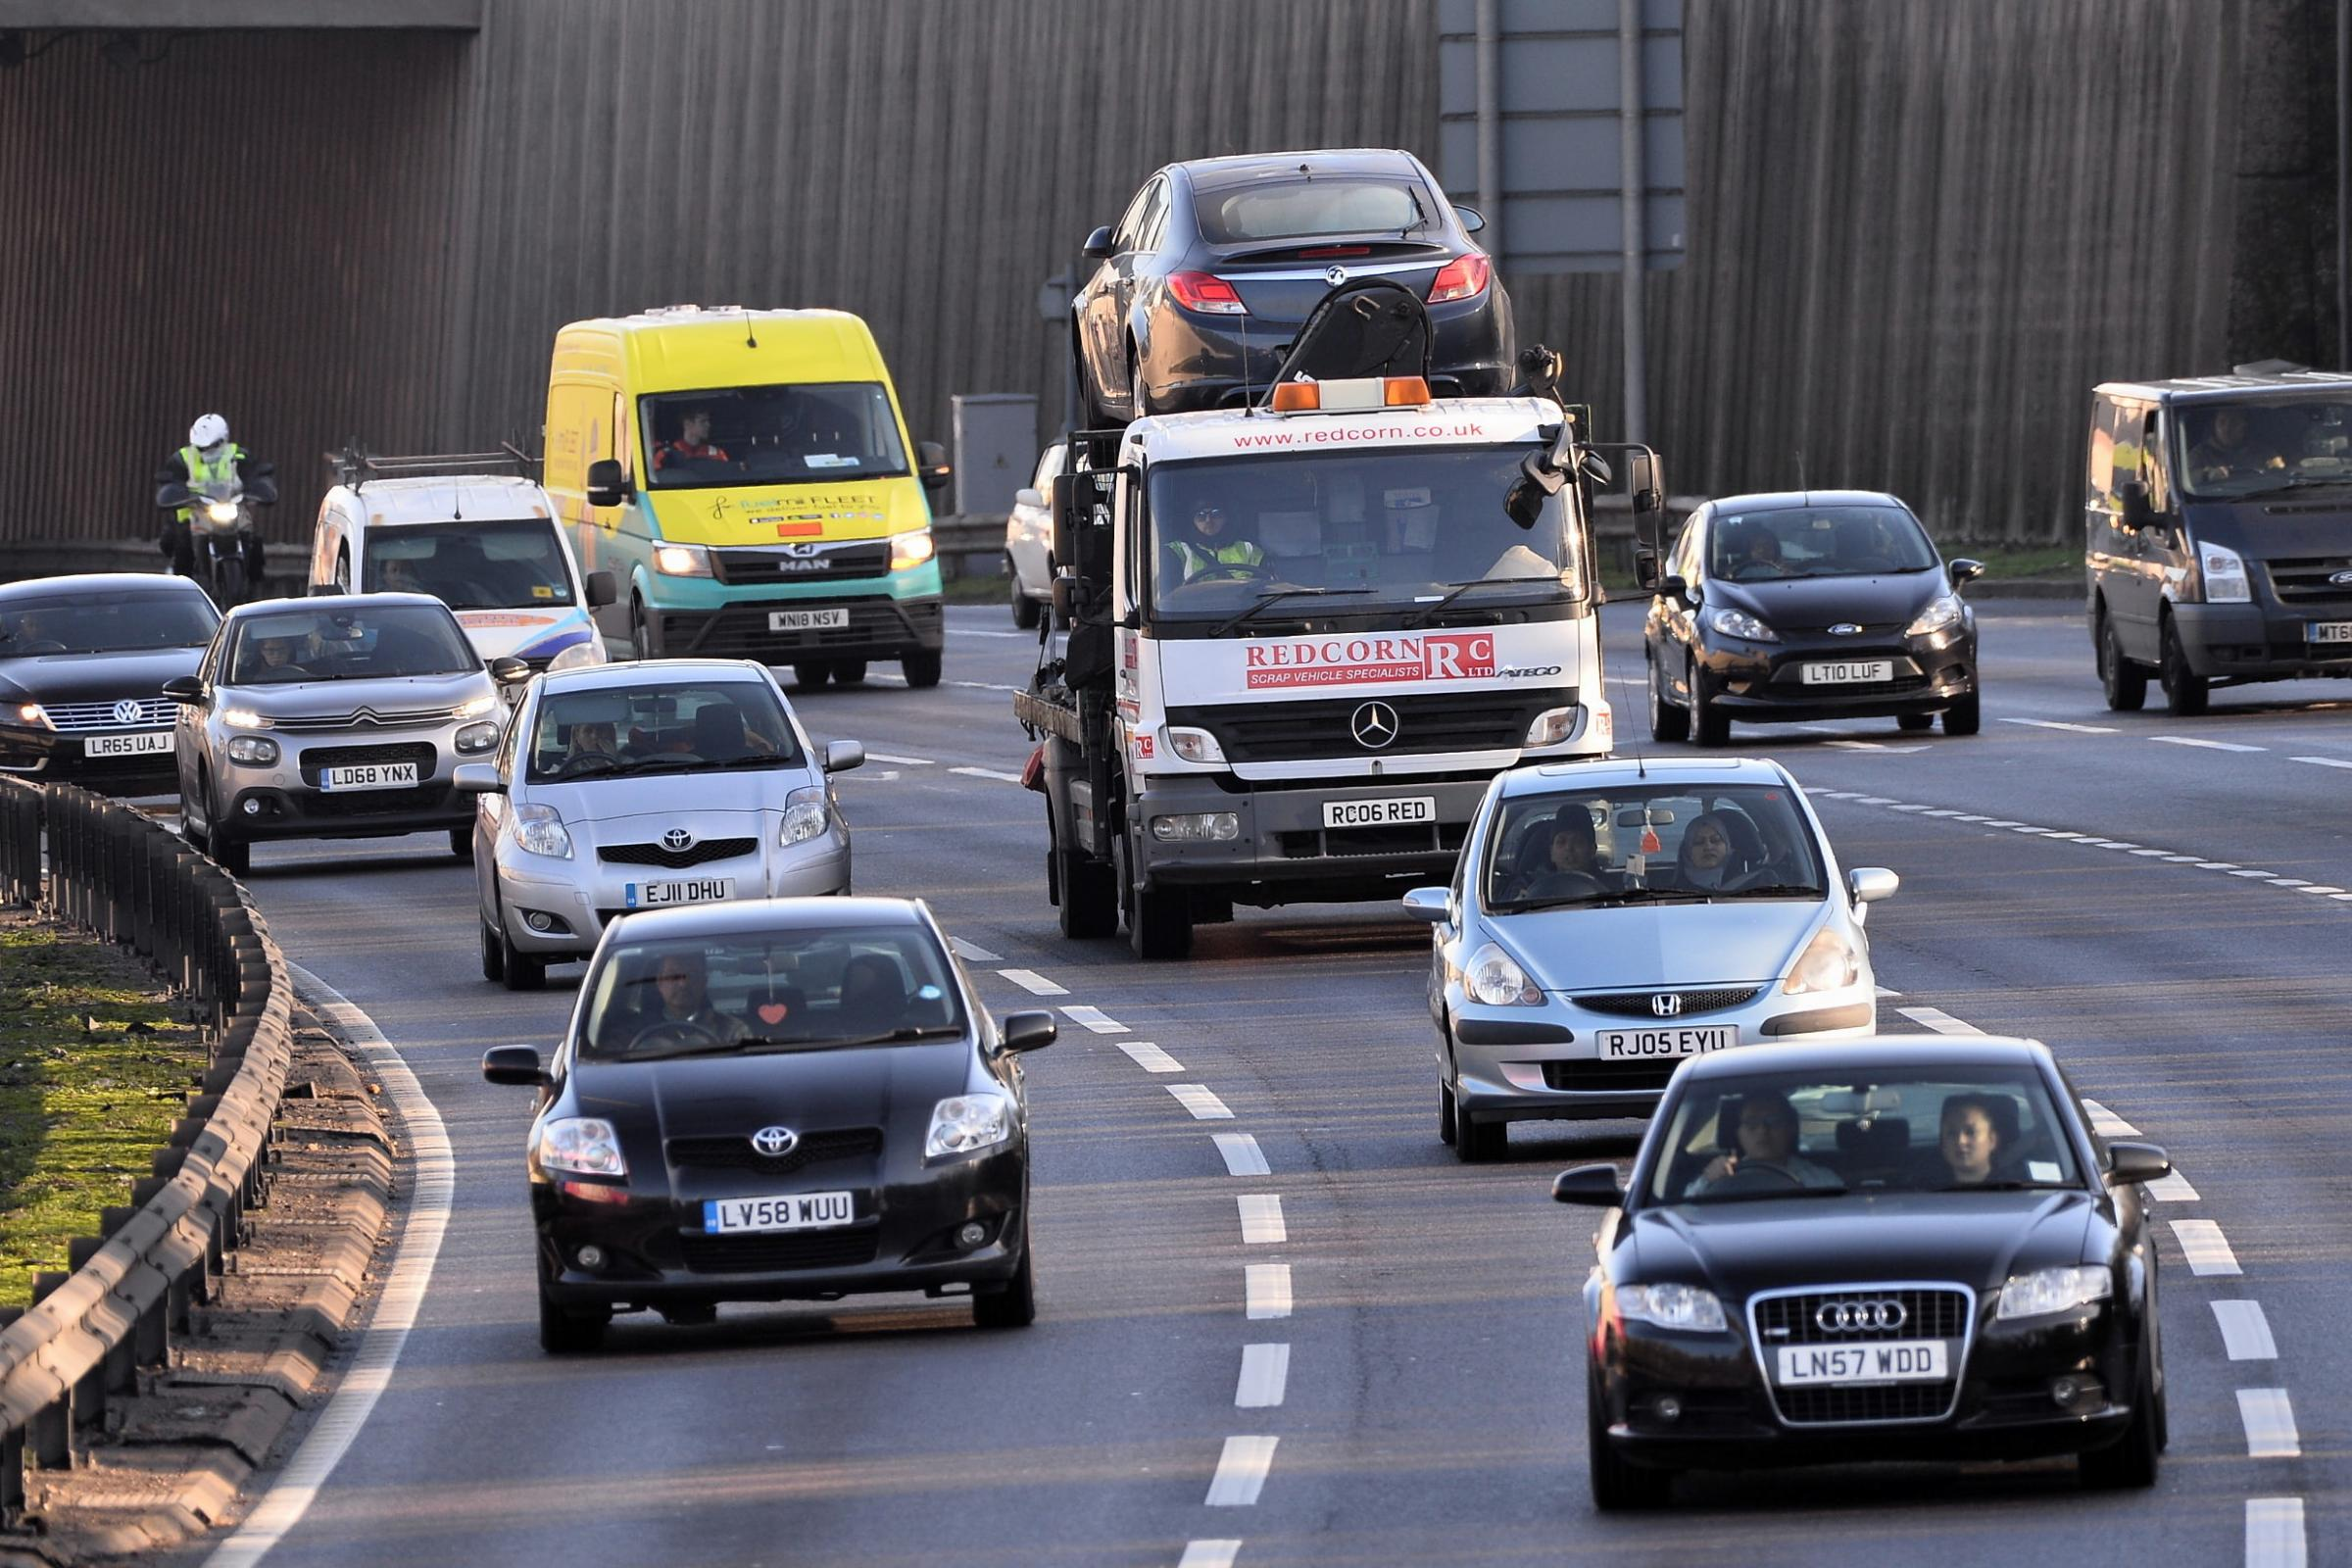 Morning update: Severe delays on the M25 and a traffic signal failure are causing disruption